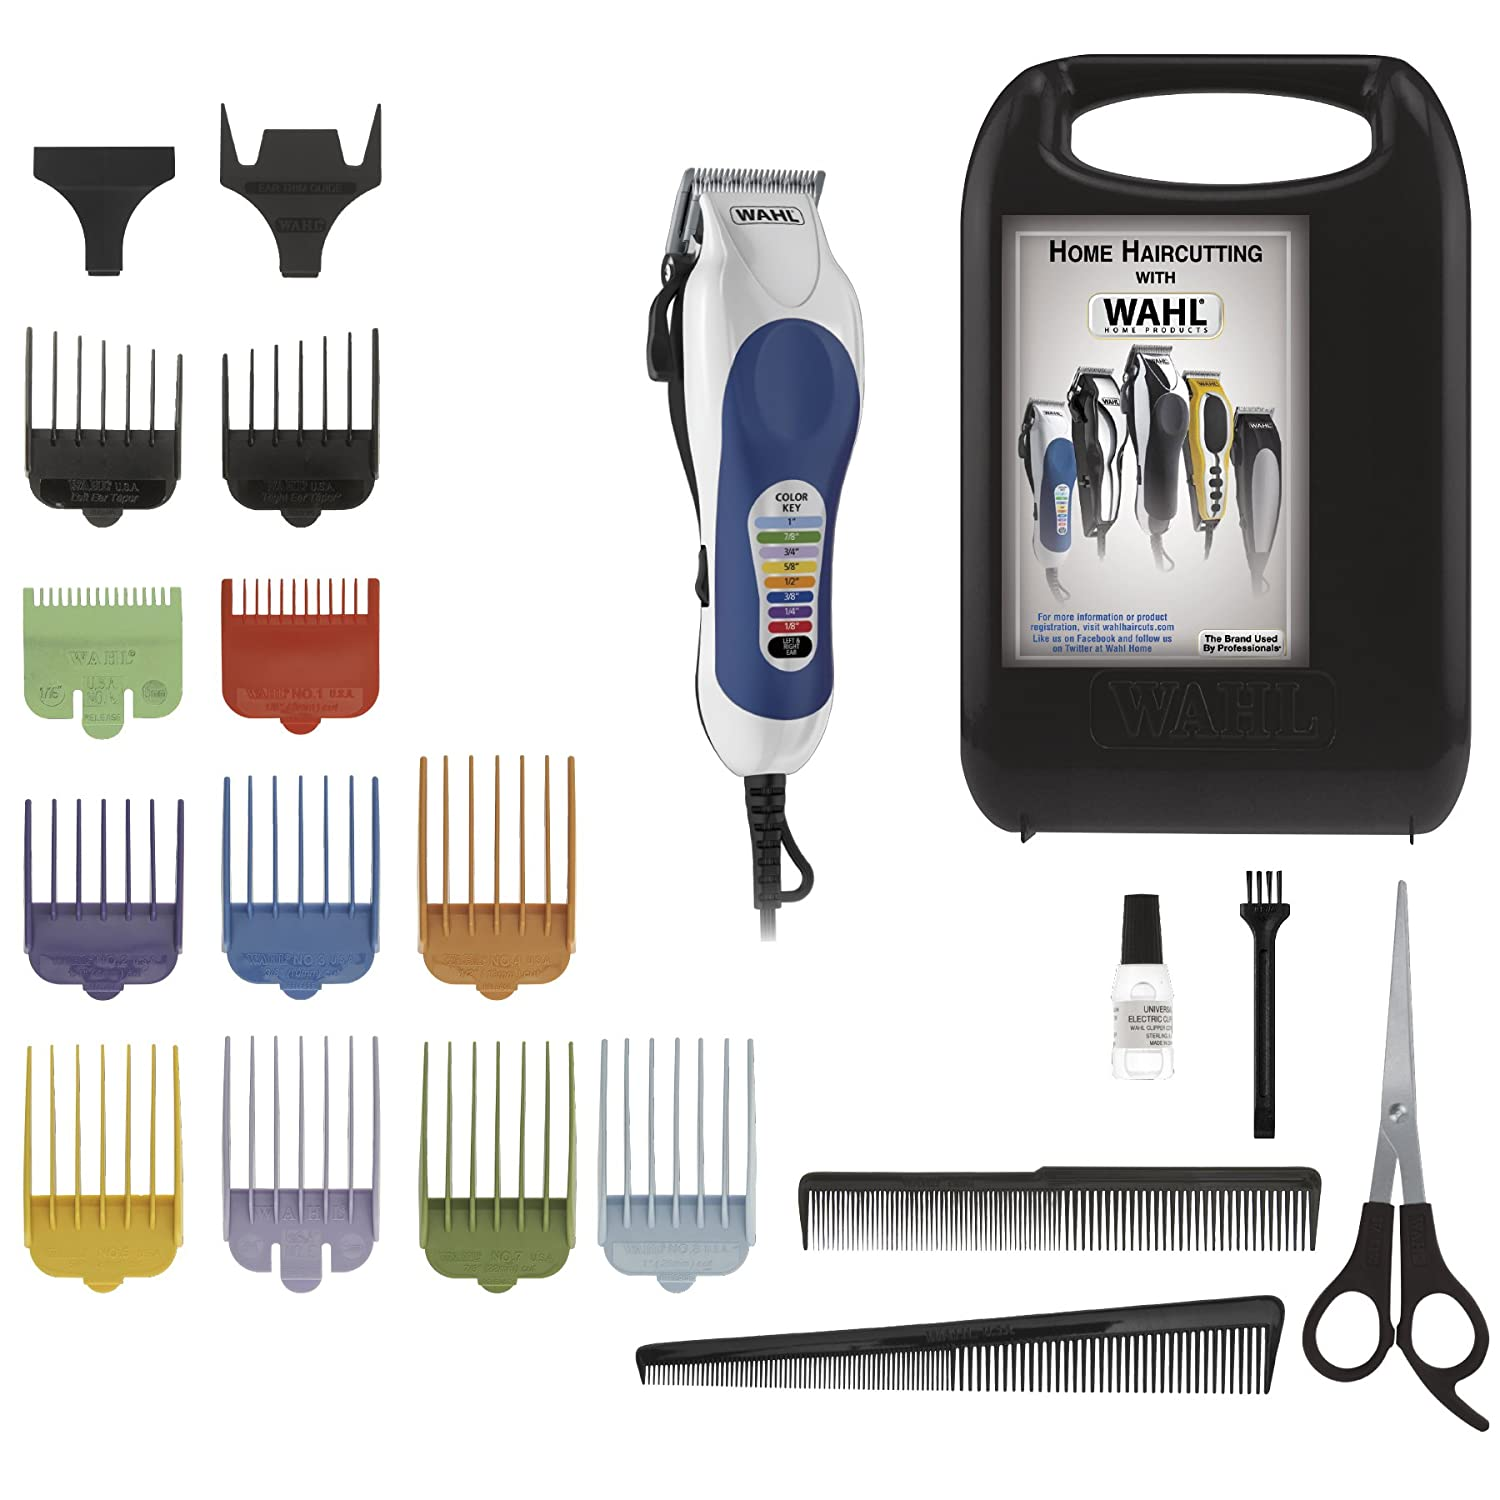 professional haircut clippers wahl color pro 20 complete haircutting kit self 5649 | 8126BSjYdfL. SL1500